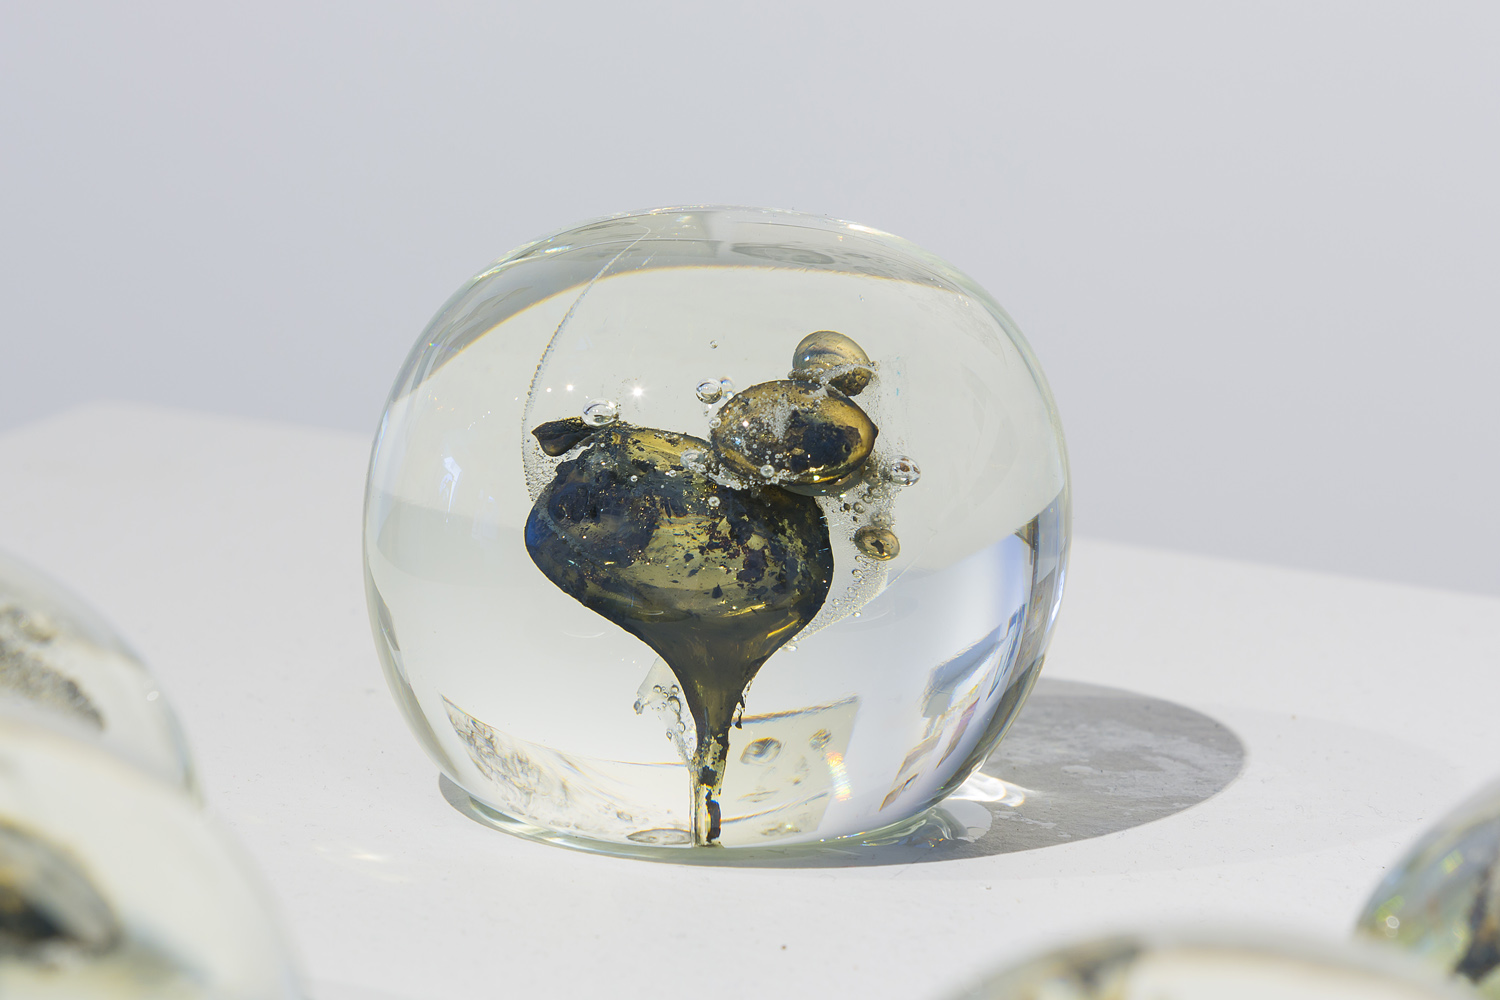 Collaboration with Emilie Patteson, Contained Incineration, hot-sculpted glass with mushroom inclusions, 2014, (photo by Adam McGrath), Canberra Glassworks GLINT exhibition install